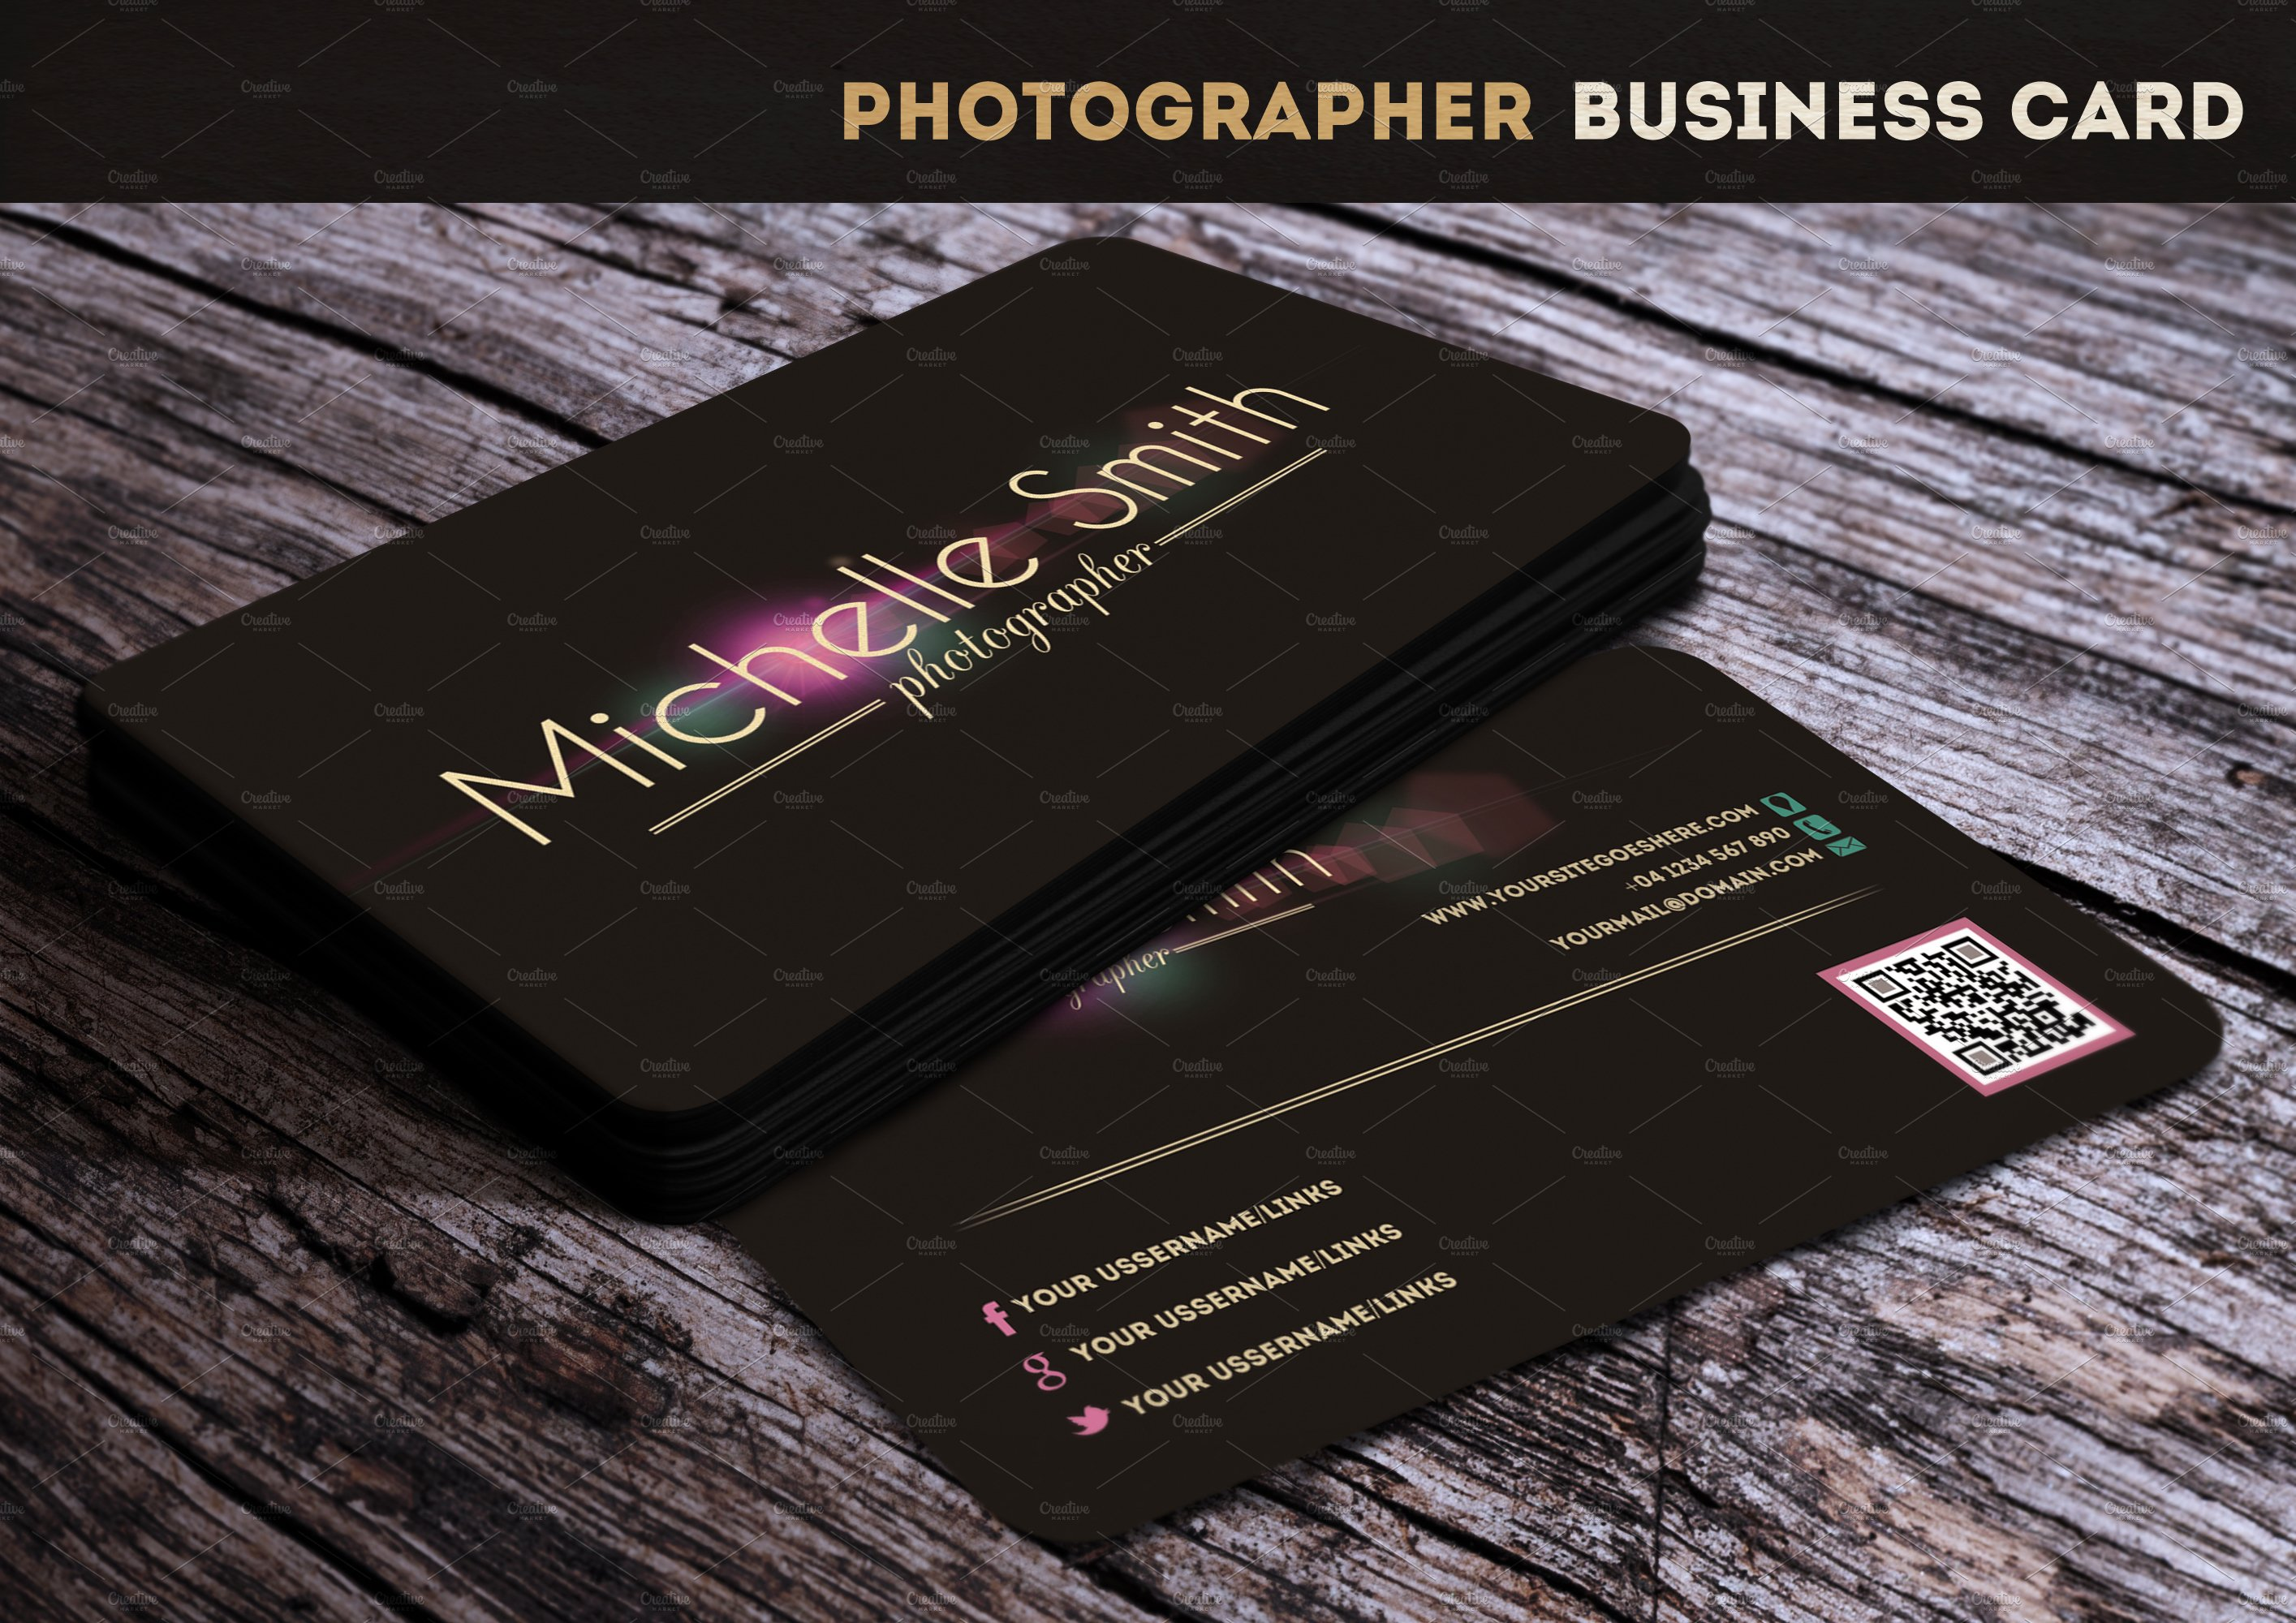 Photographer business card business card templates creative market cheaphphosting Choice Image